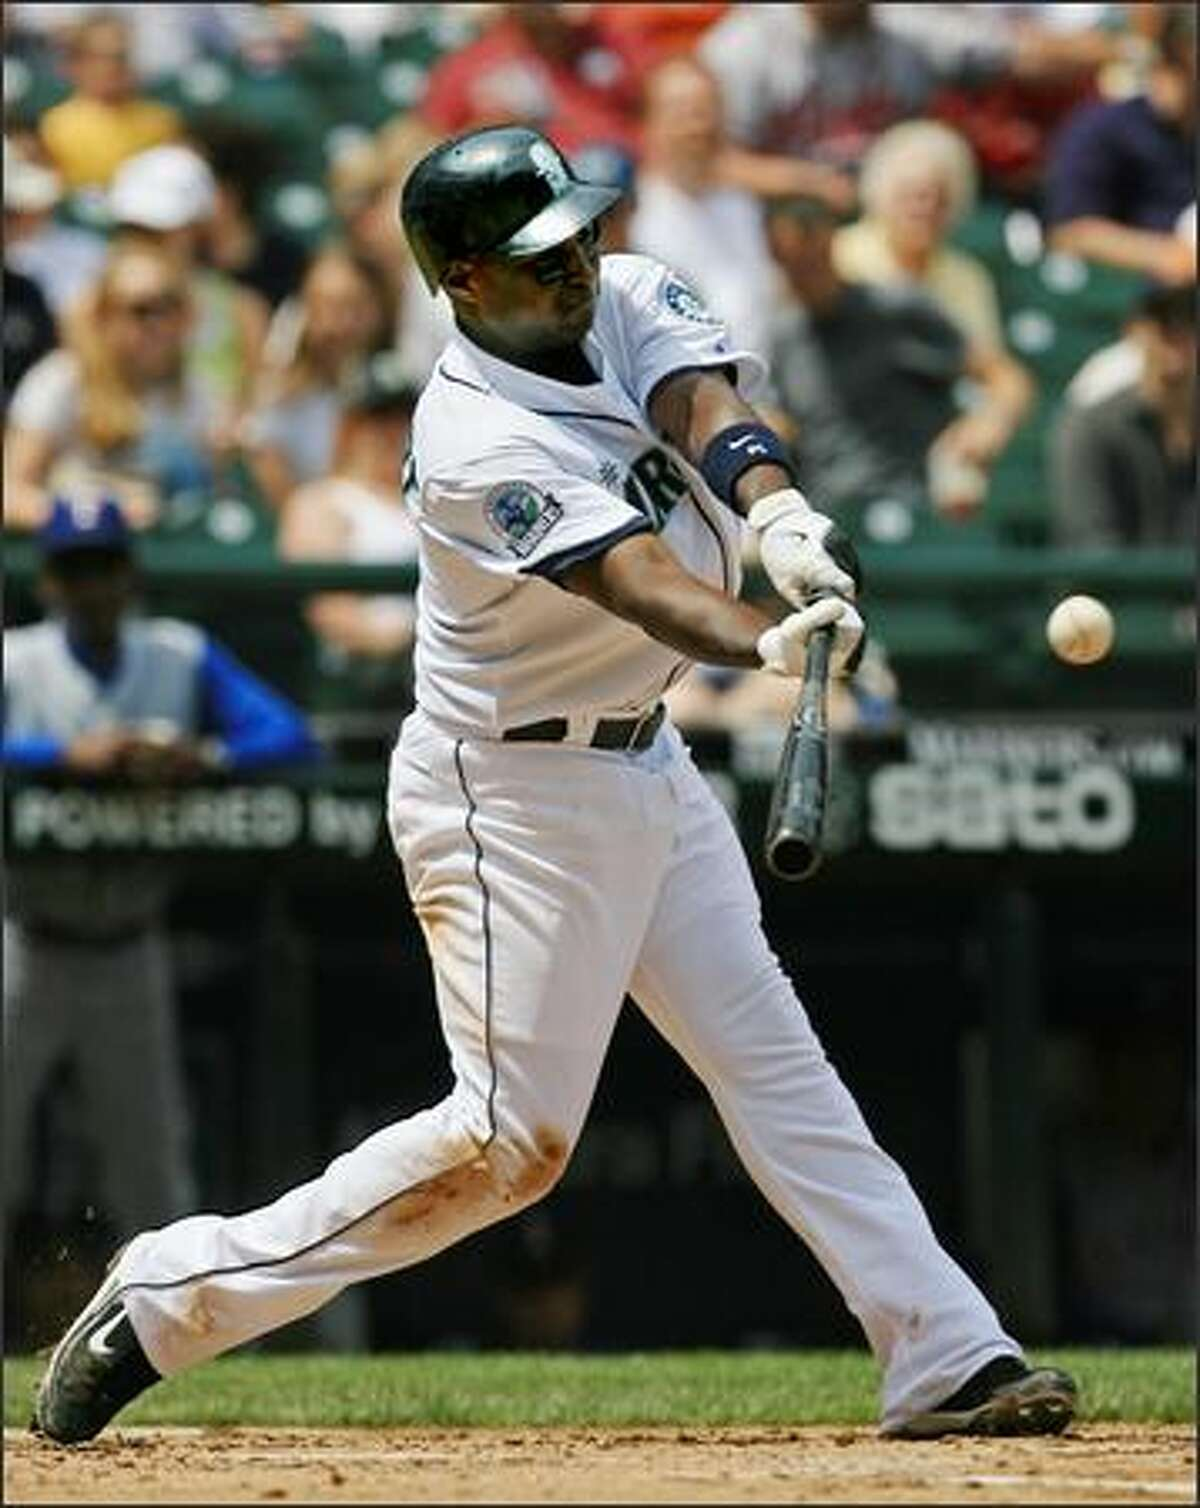 Seattle Mariners' Yuniesky Betancourt doubles off Texas Rangers starter Robinson Tejeda to extend his hitting streak to 15 games during the 2nd inning.